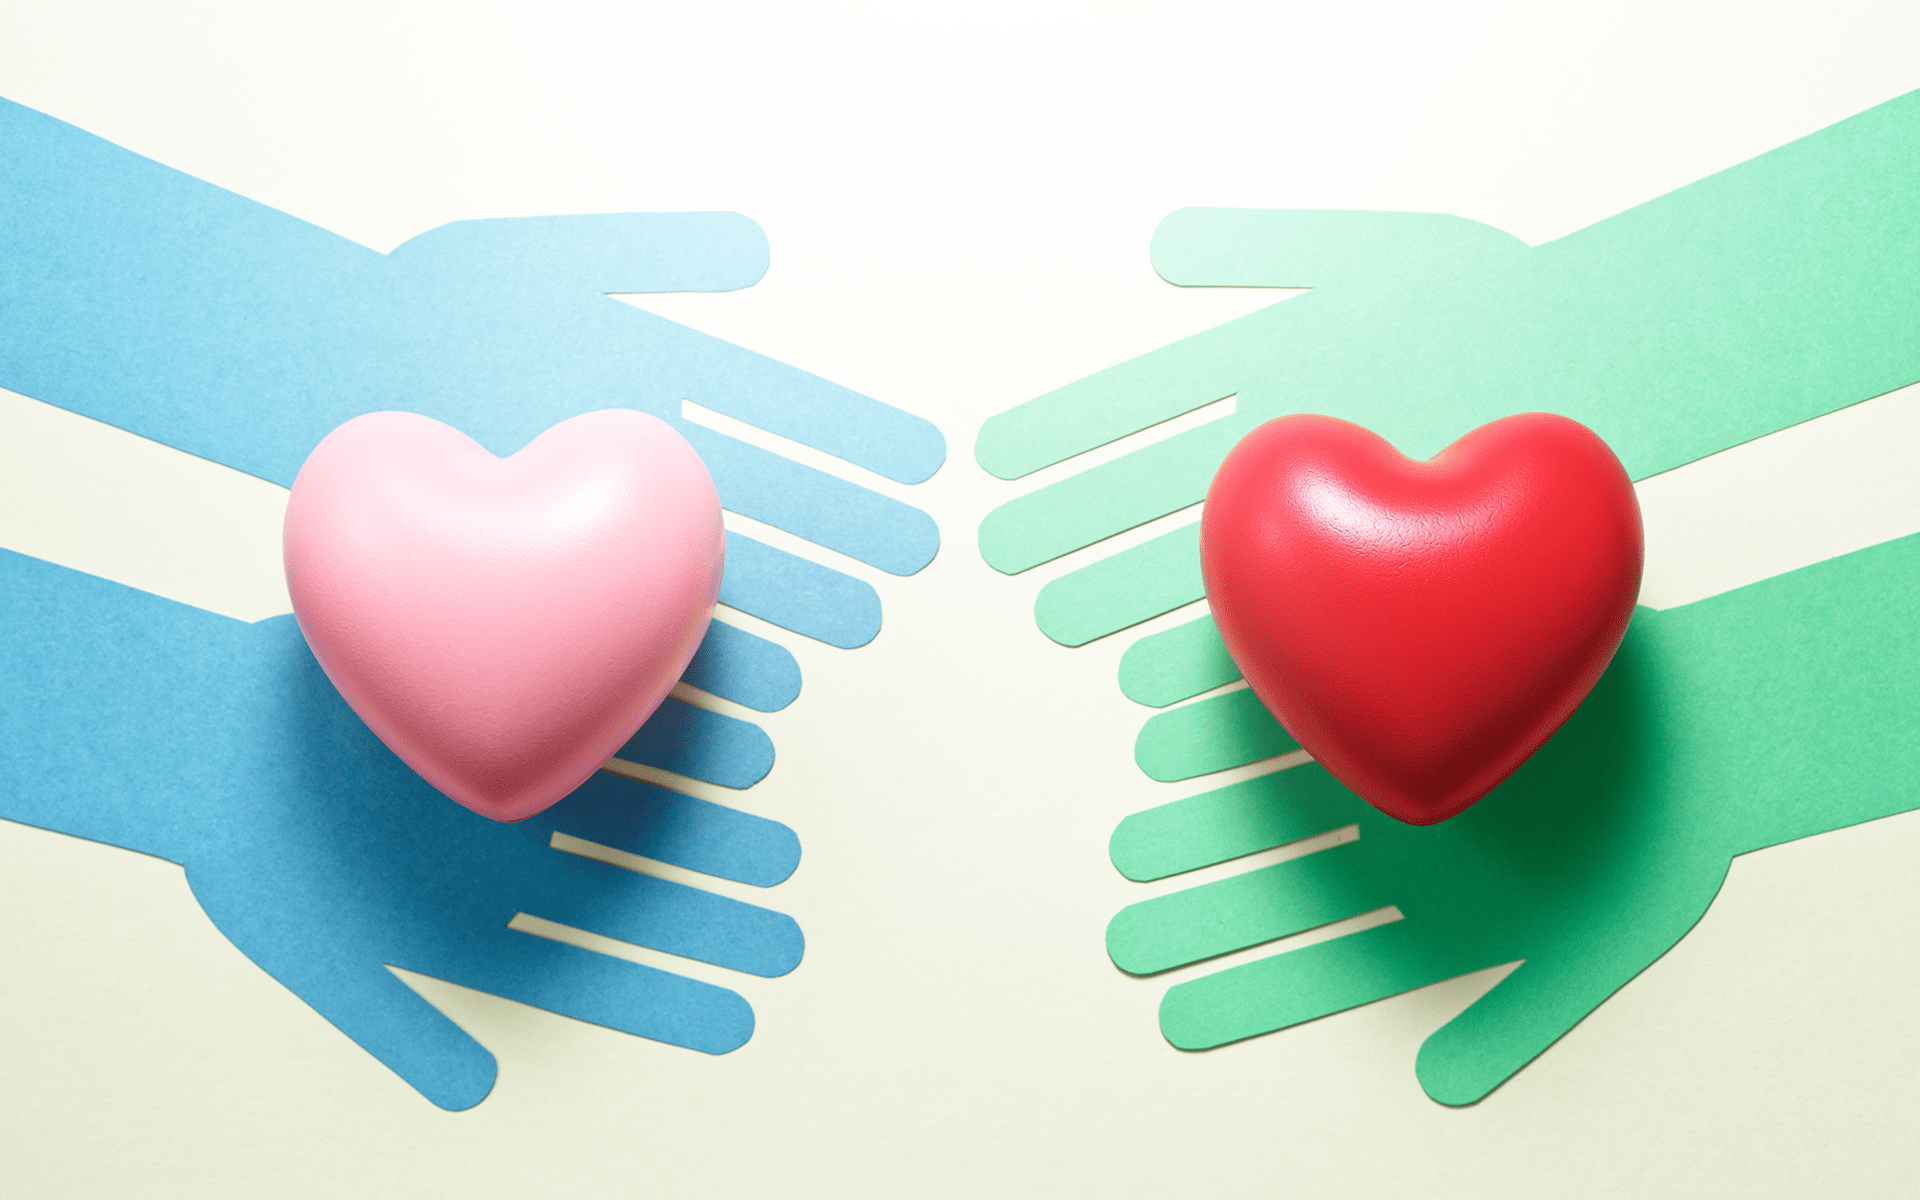 Paper cut outs of two blue hands and two green hands each reaching toward each other with a heart on each set of hands.